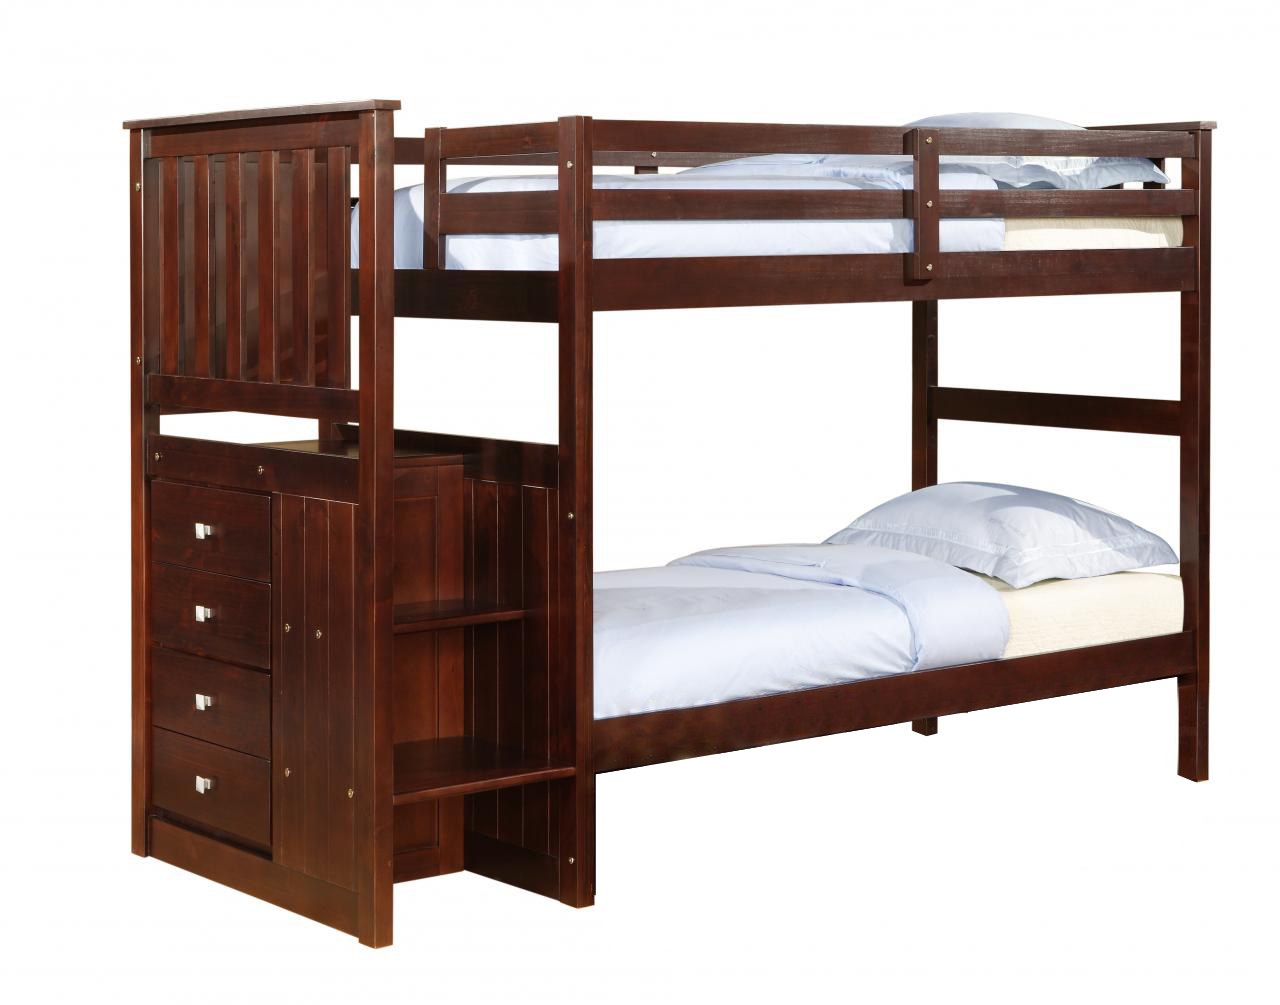 Solid Wood Espresso Staircase Bunk Bed With Storage Dream Rooms Furniture